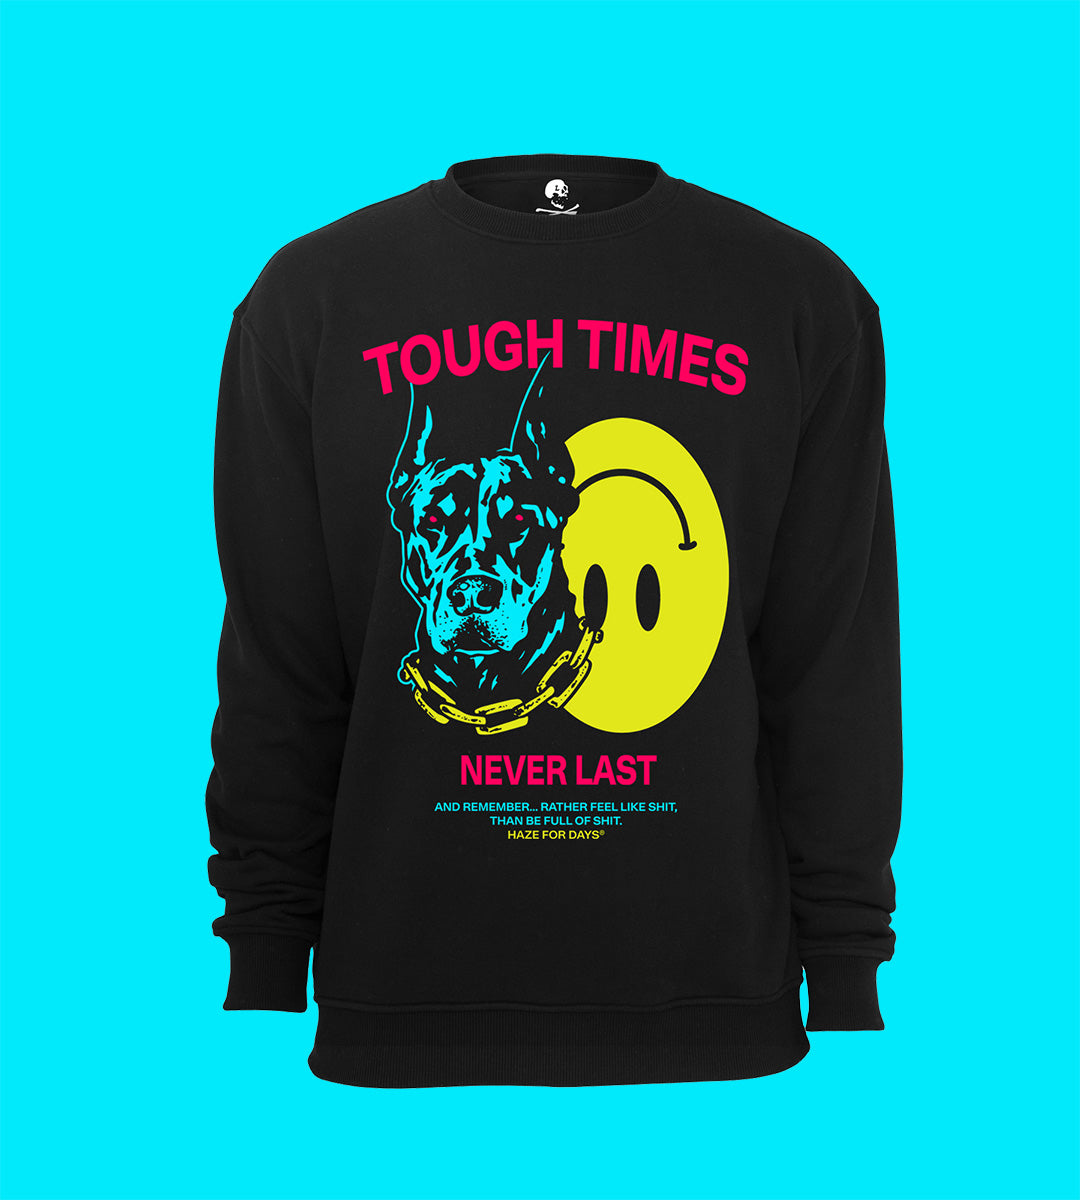 TOUGH TIMES Crewneck